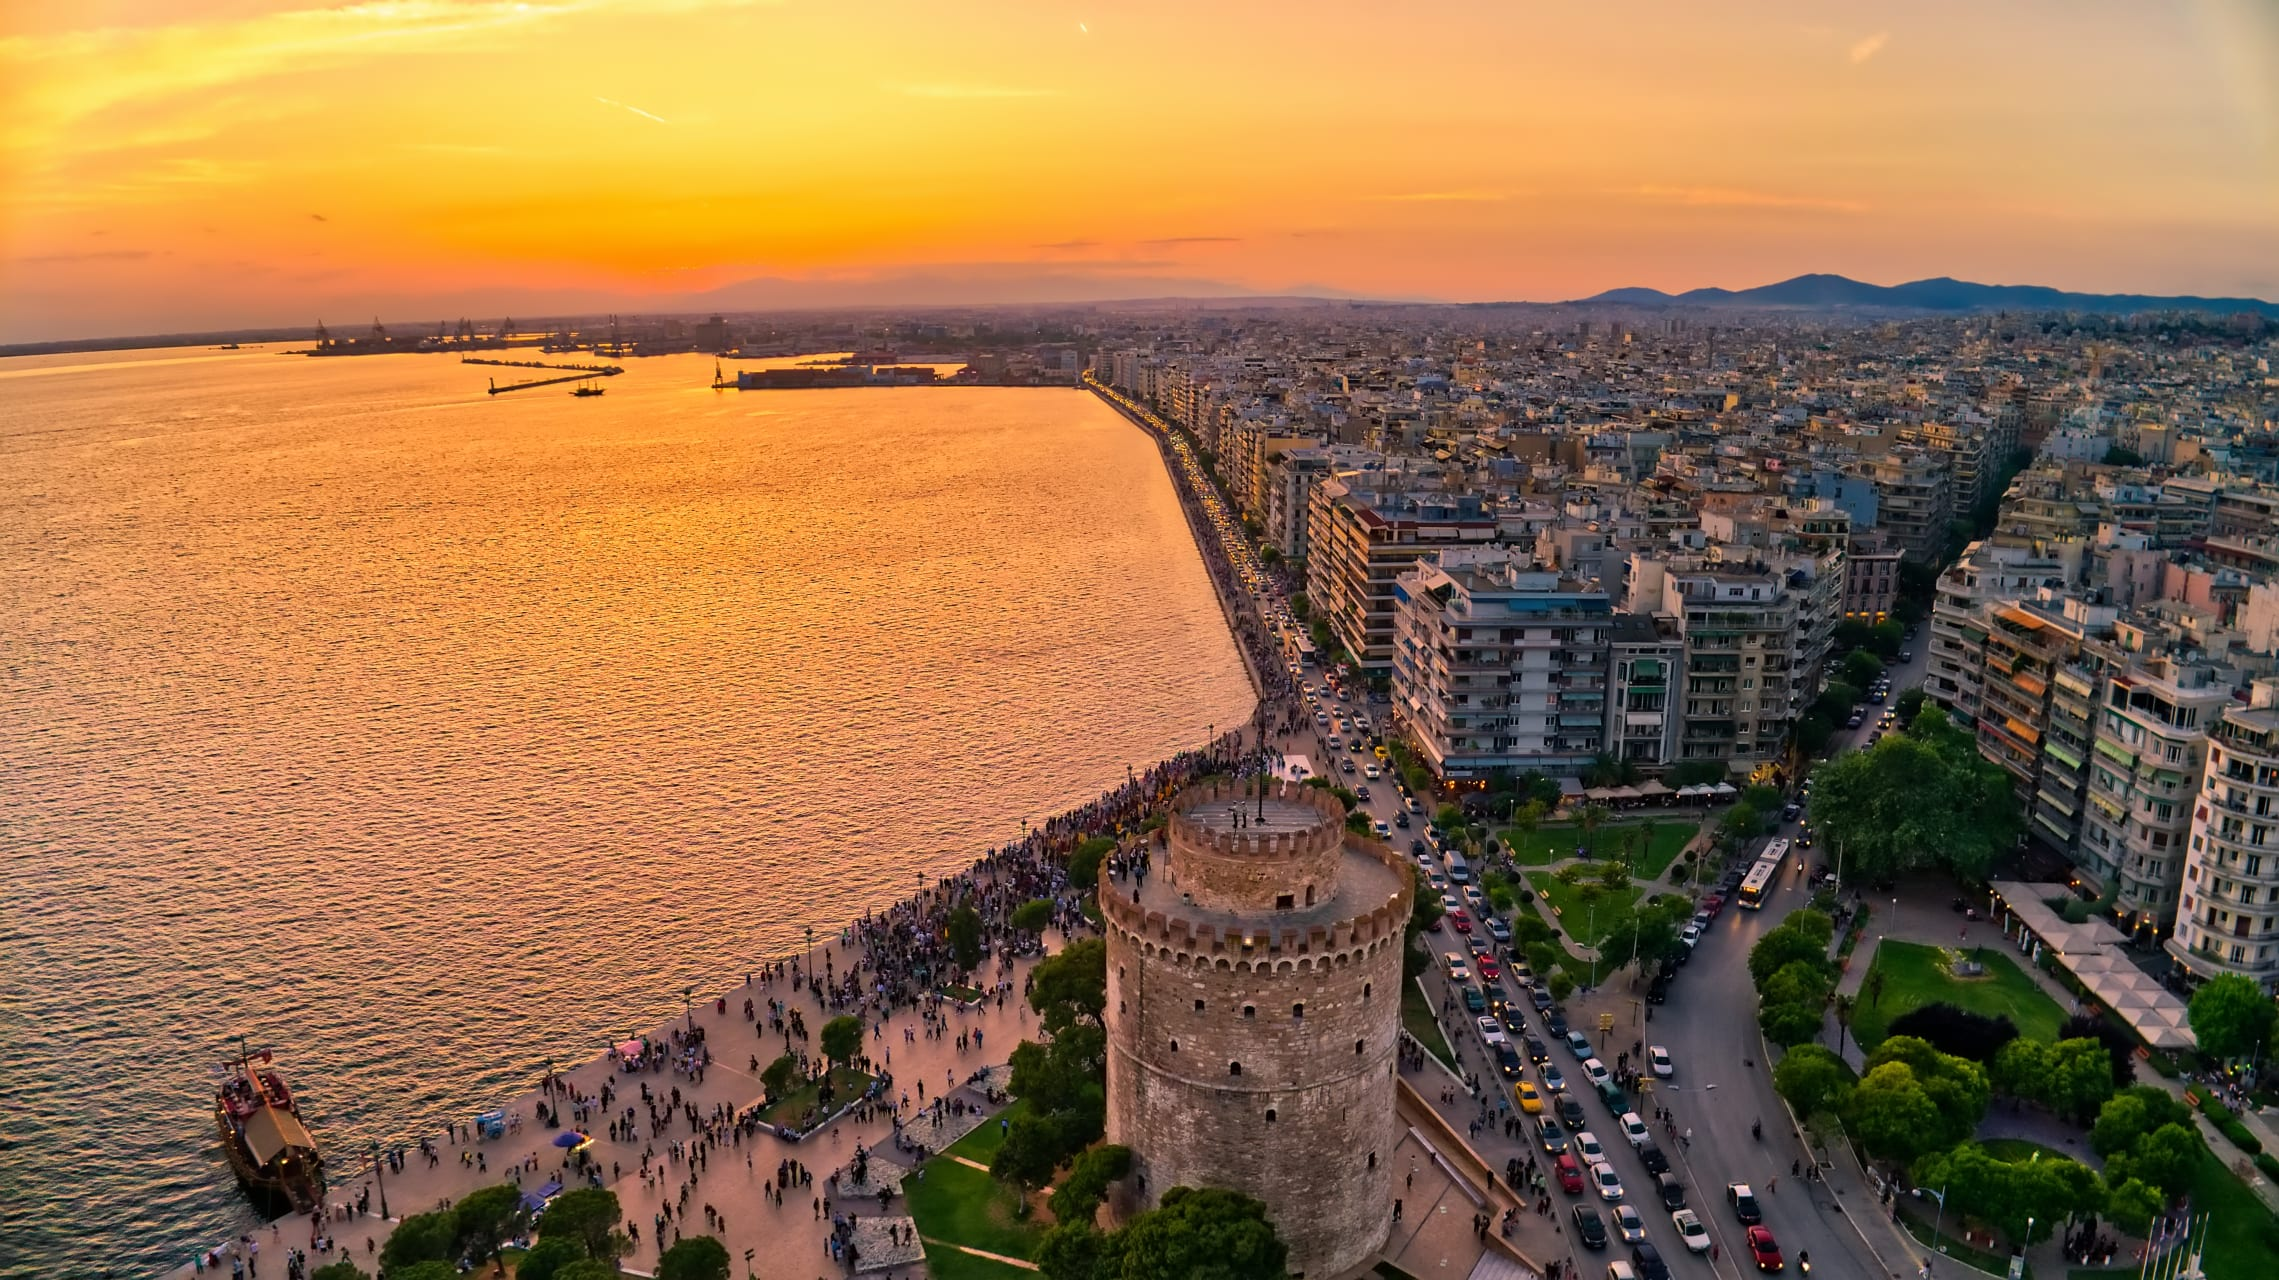 Thessaloniki cover image